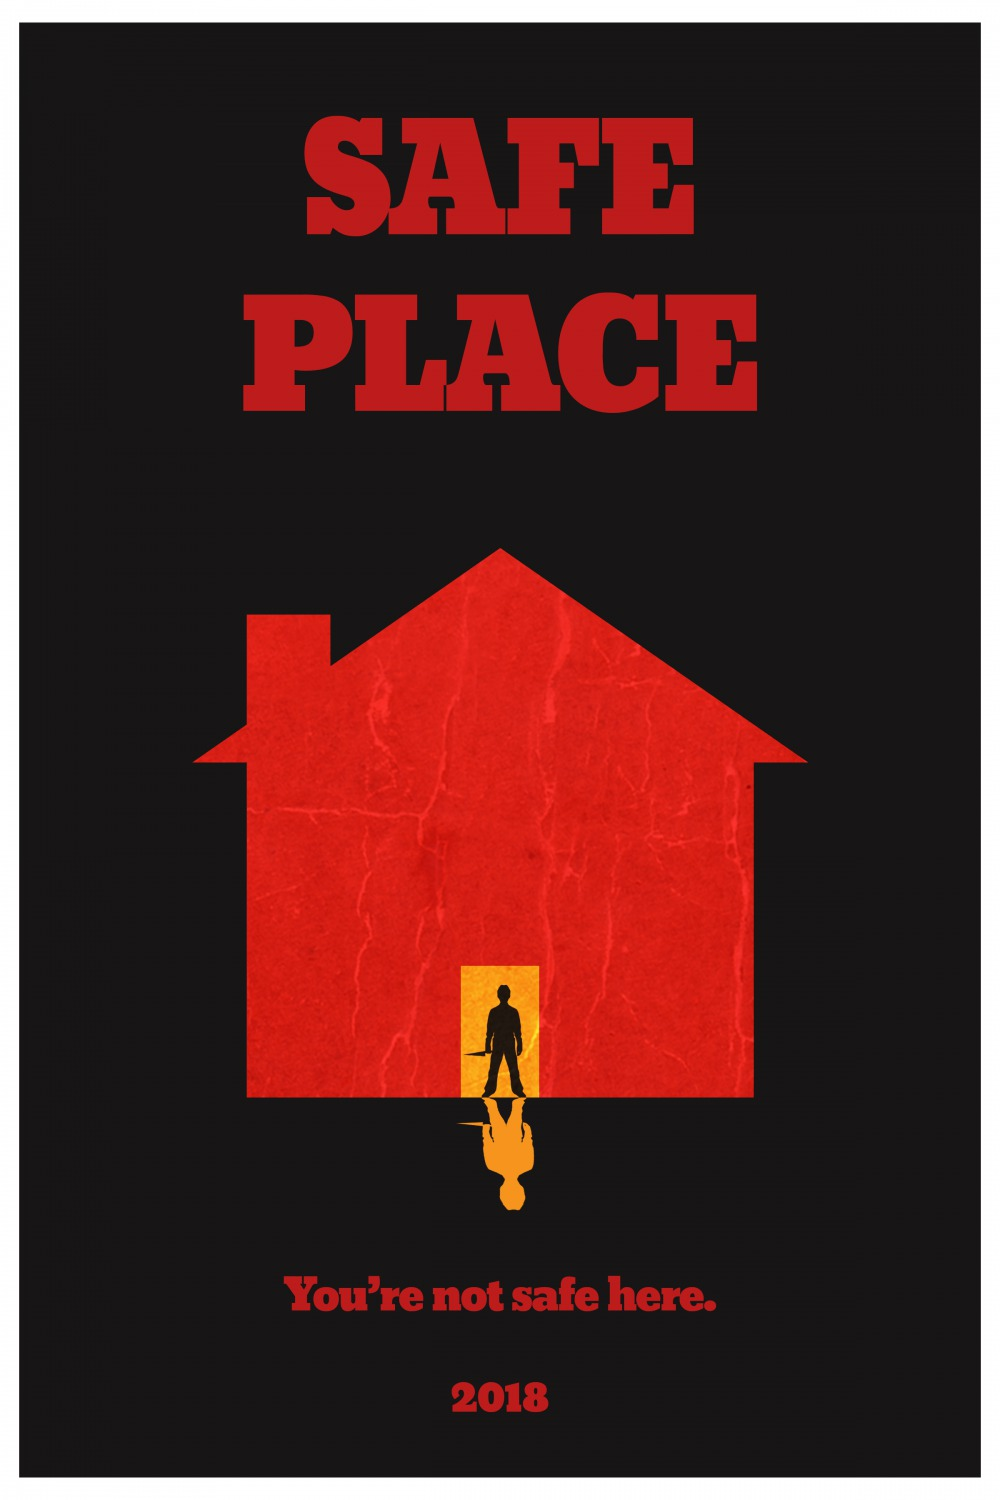 1 safe place movie poster